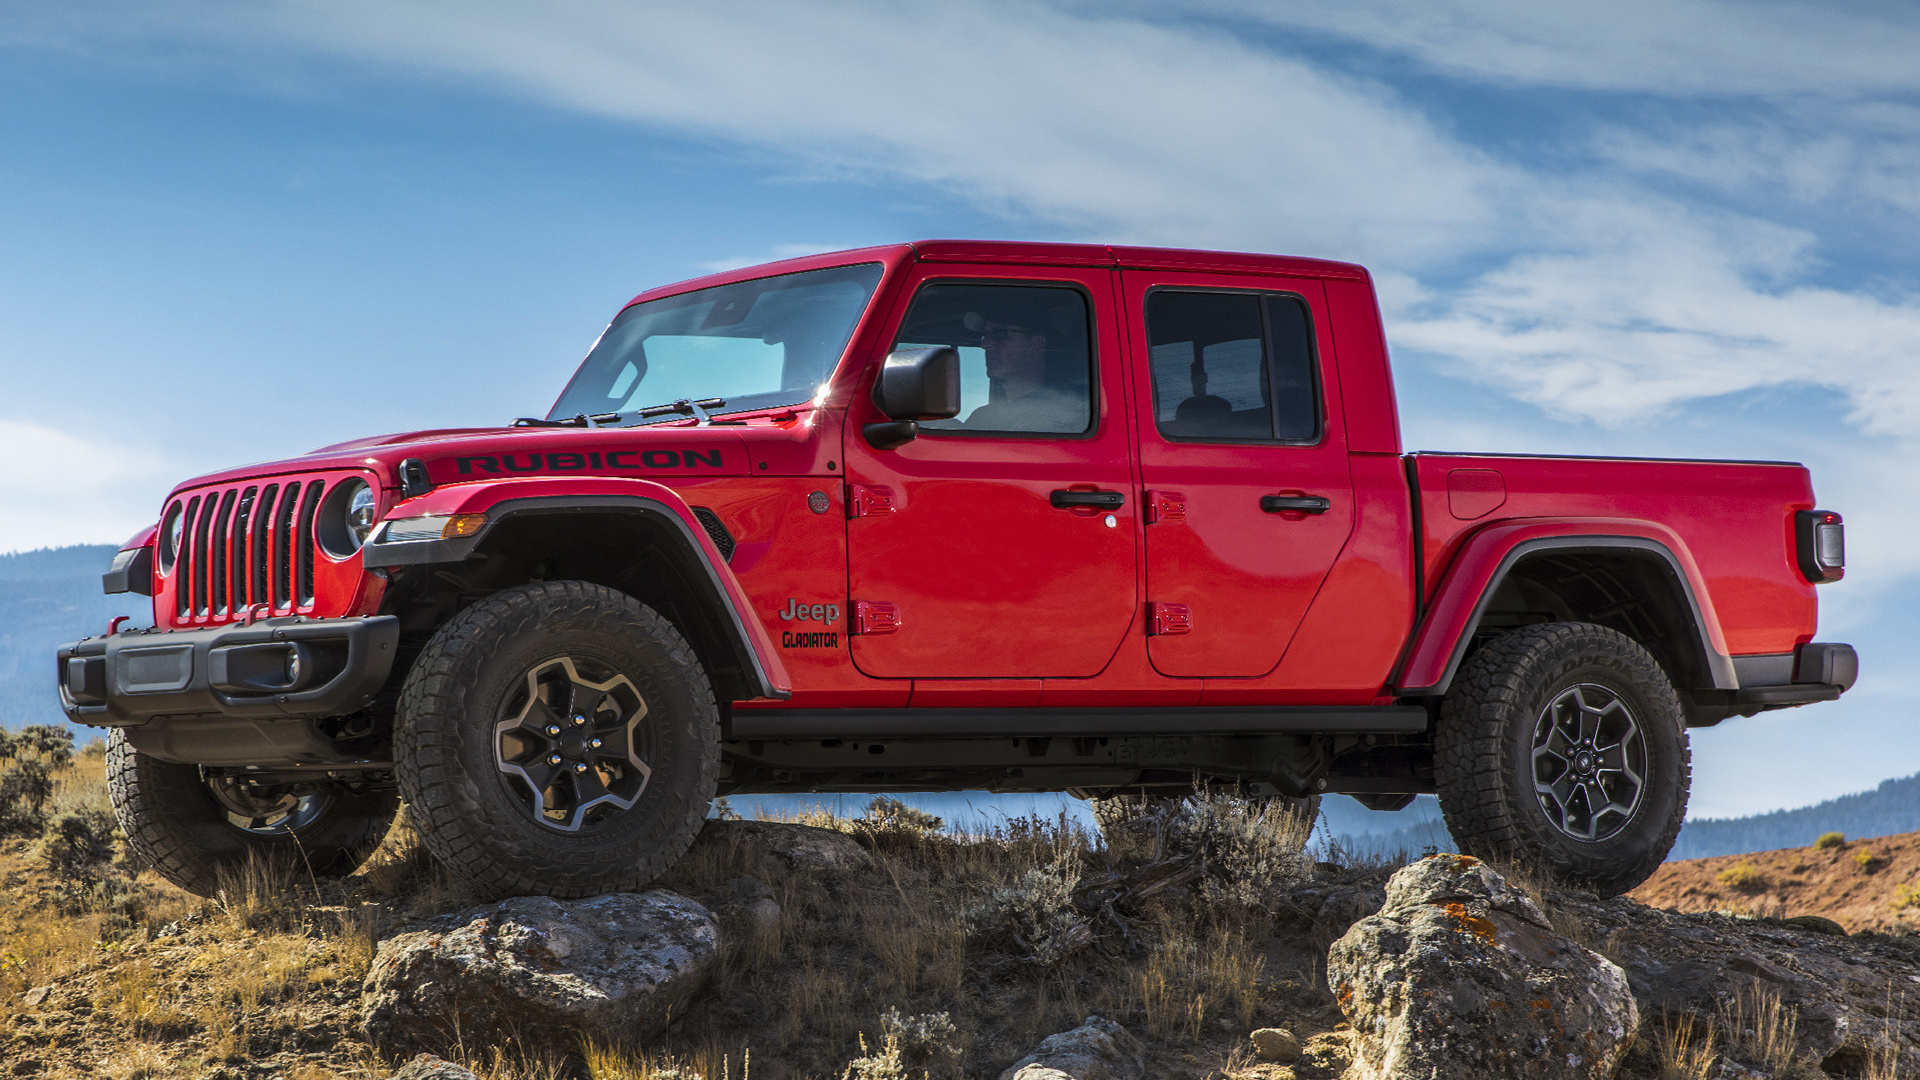 2020 Jeep Gladiator Rubicon - Wallpapers and HD Images ...